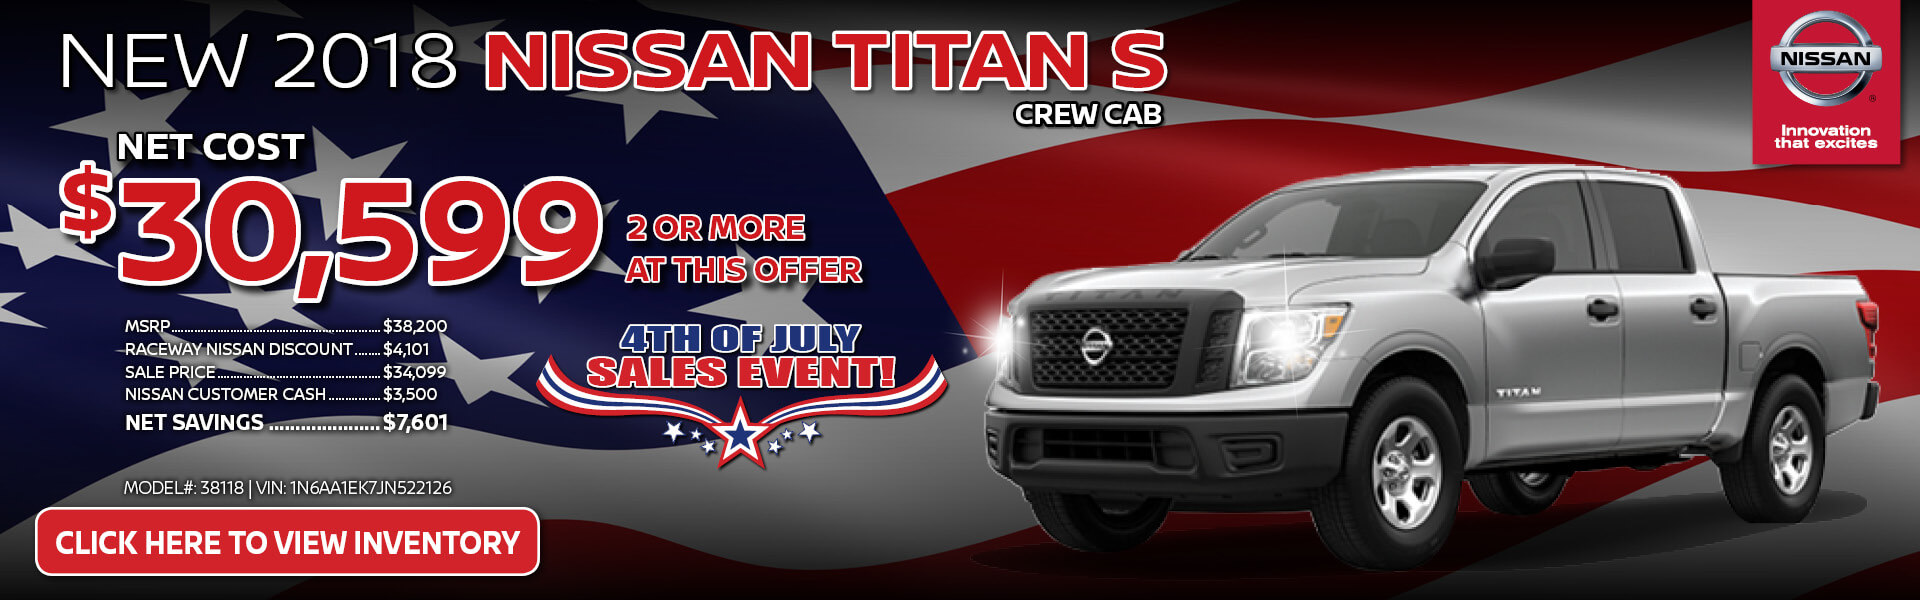 Nissan Titan $30,599 Purchase